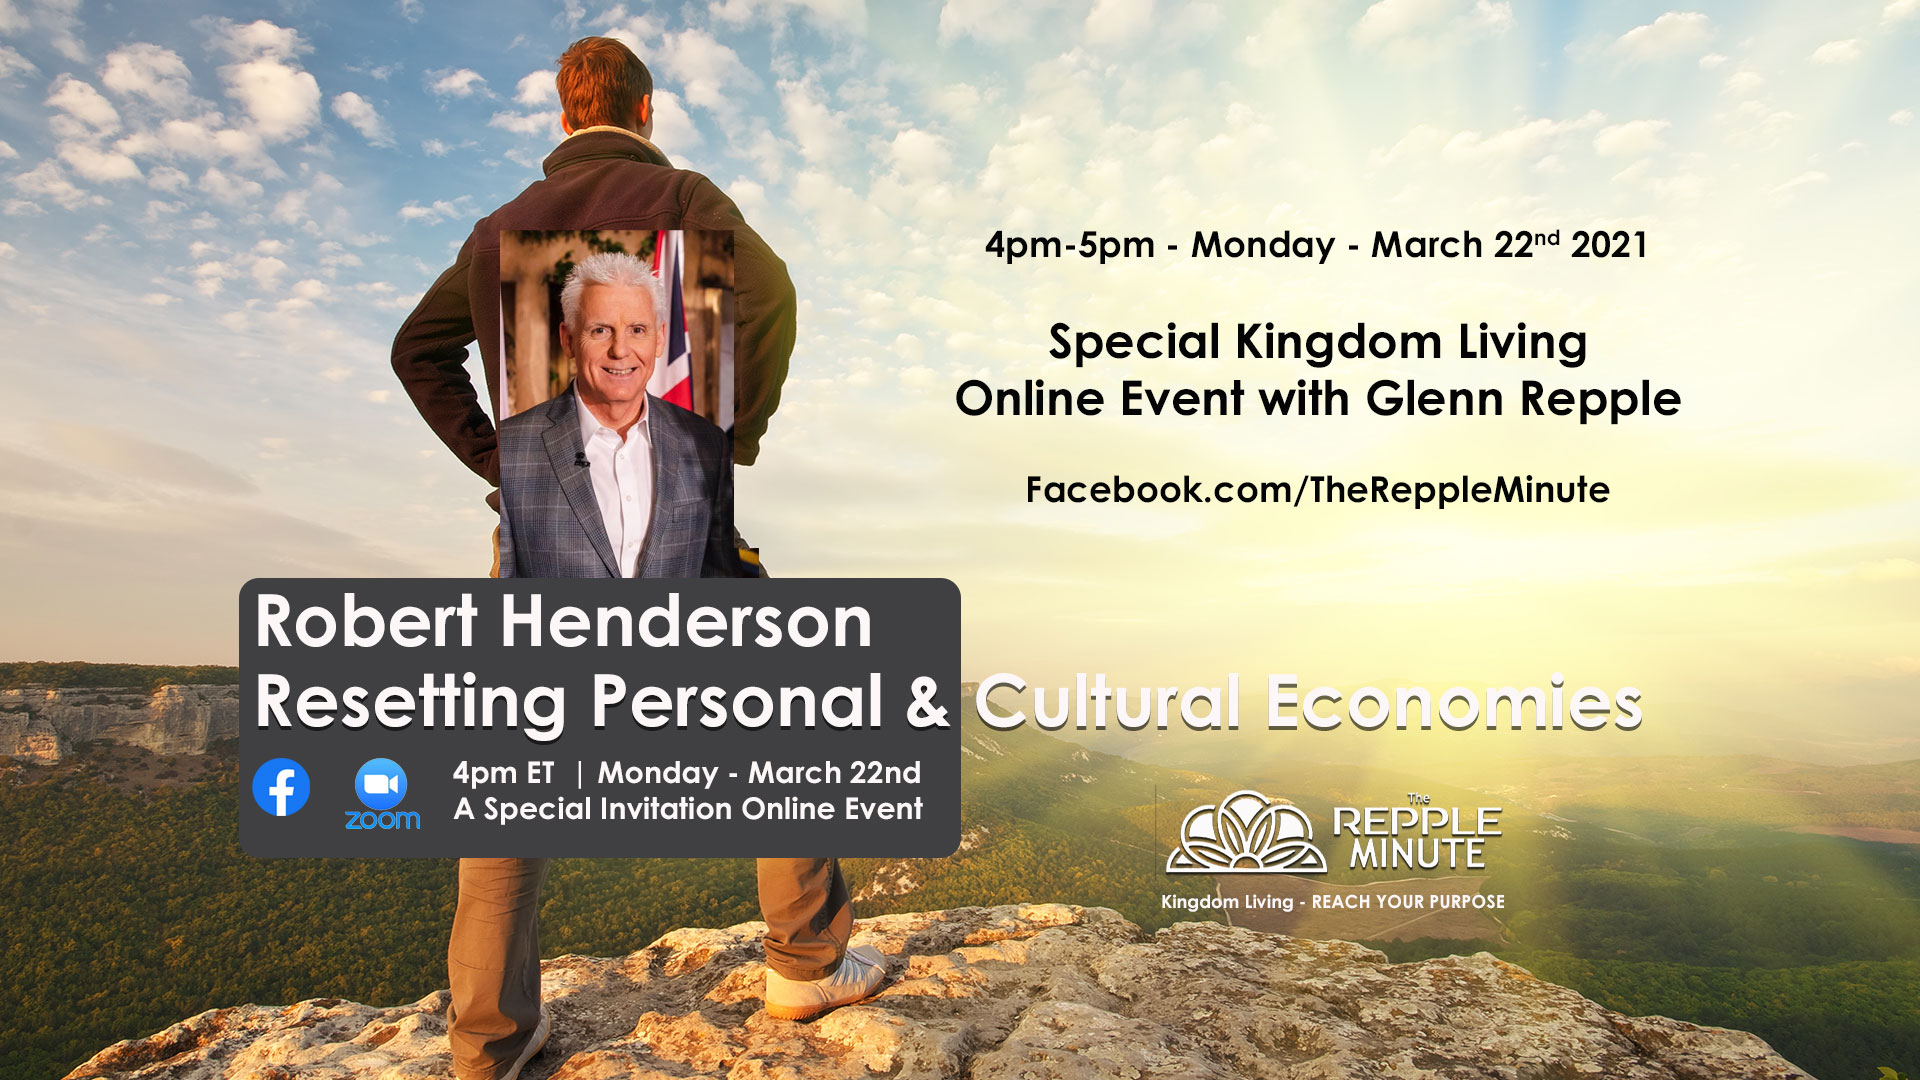 Resetting Personal & Cultural Economies